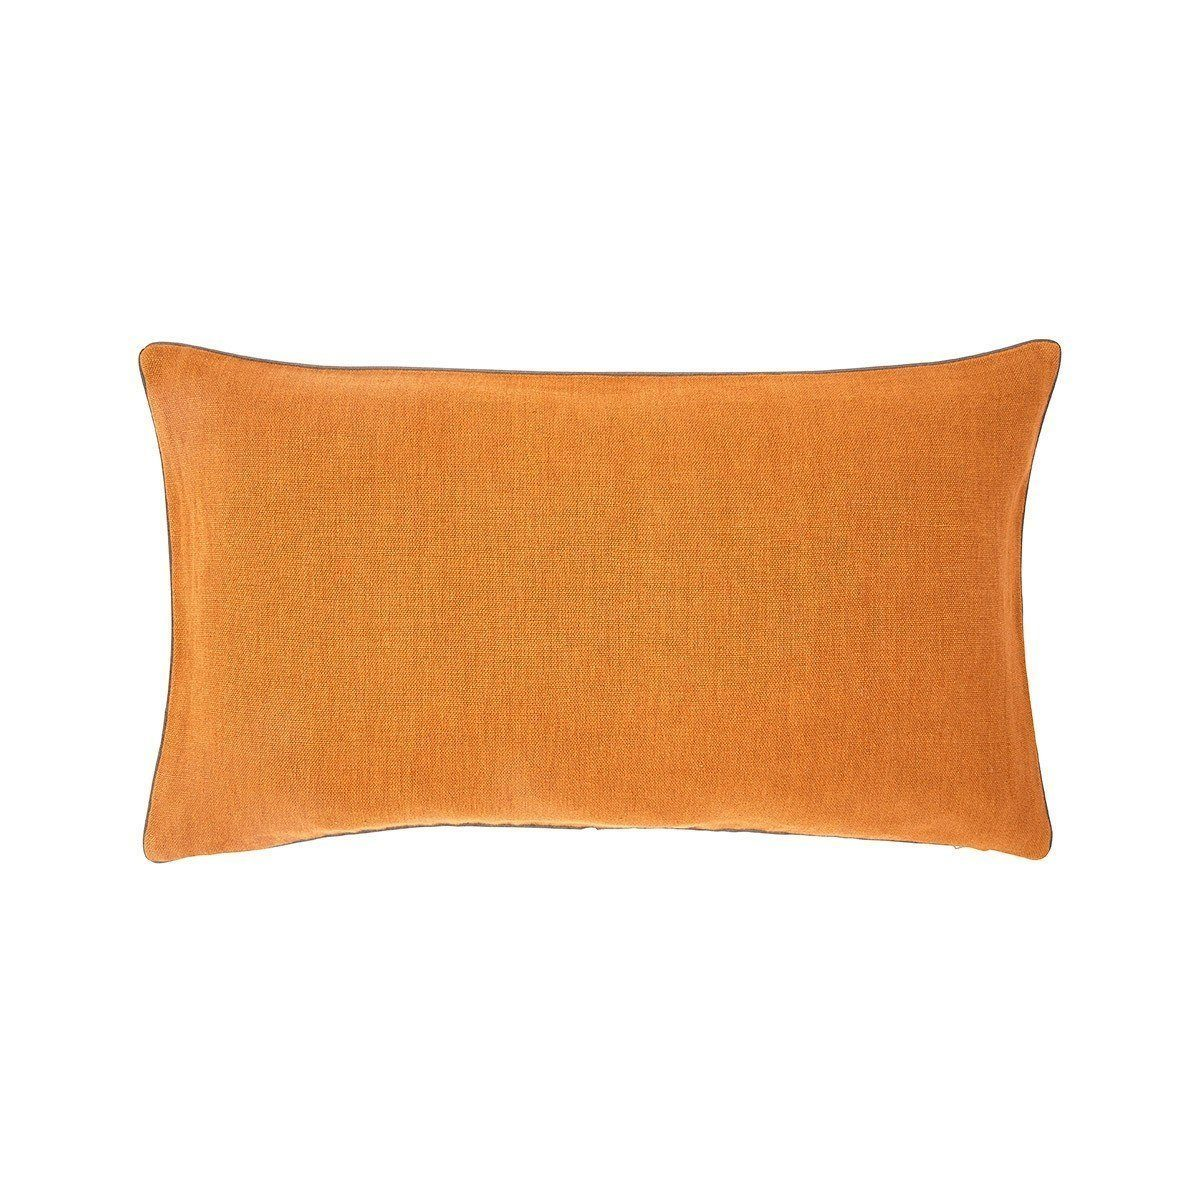 Pigment Cuir Pillow by Iosis